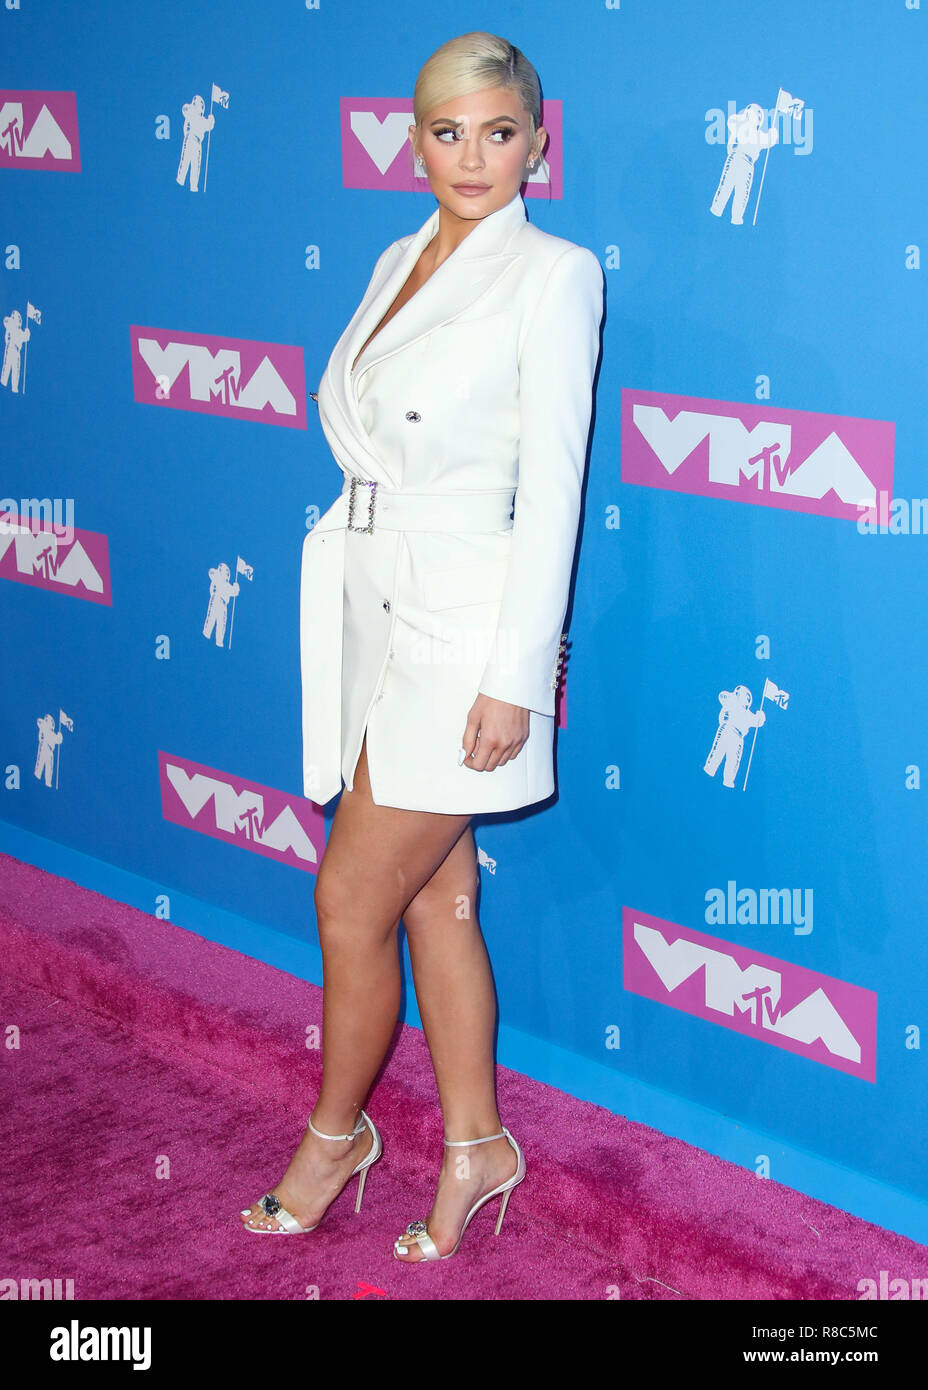 6b7b6515a9 ... 20  Kylie Jenner wearing Tom Ford with Olgana Paris heels